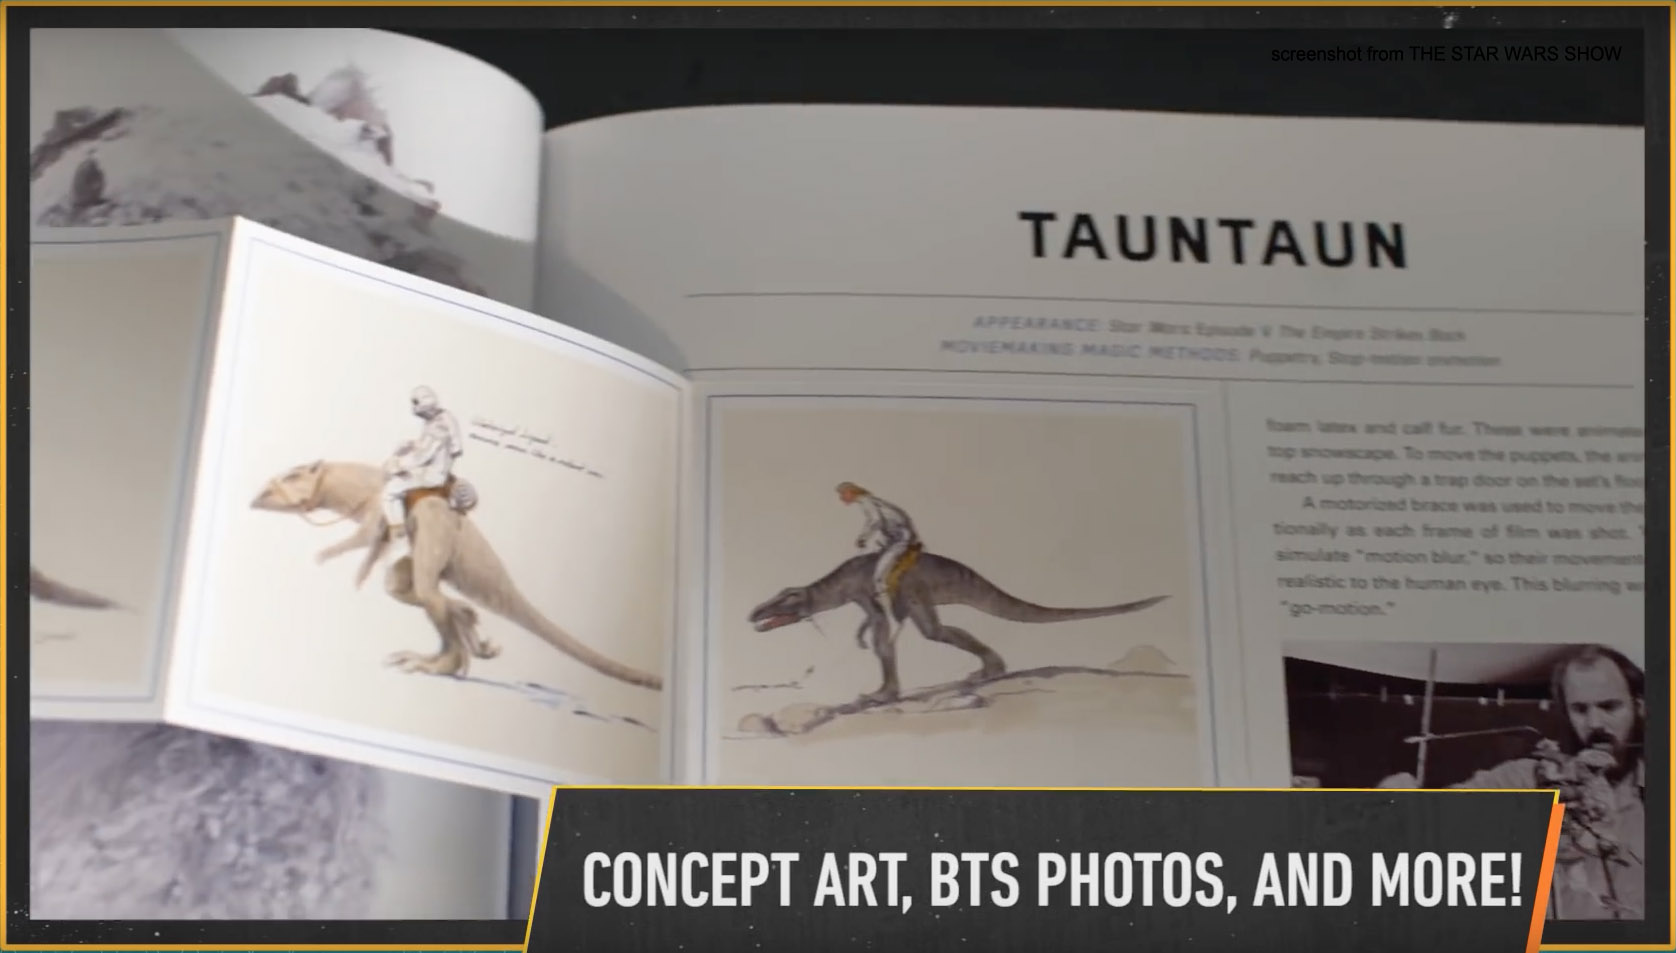 Behind the scenes Tauntaun photos and art